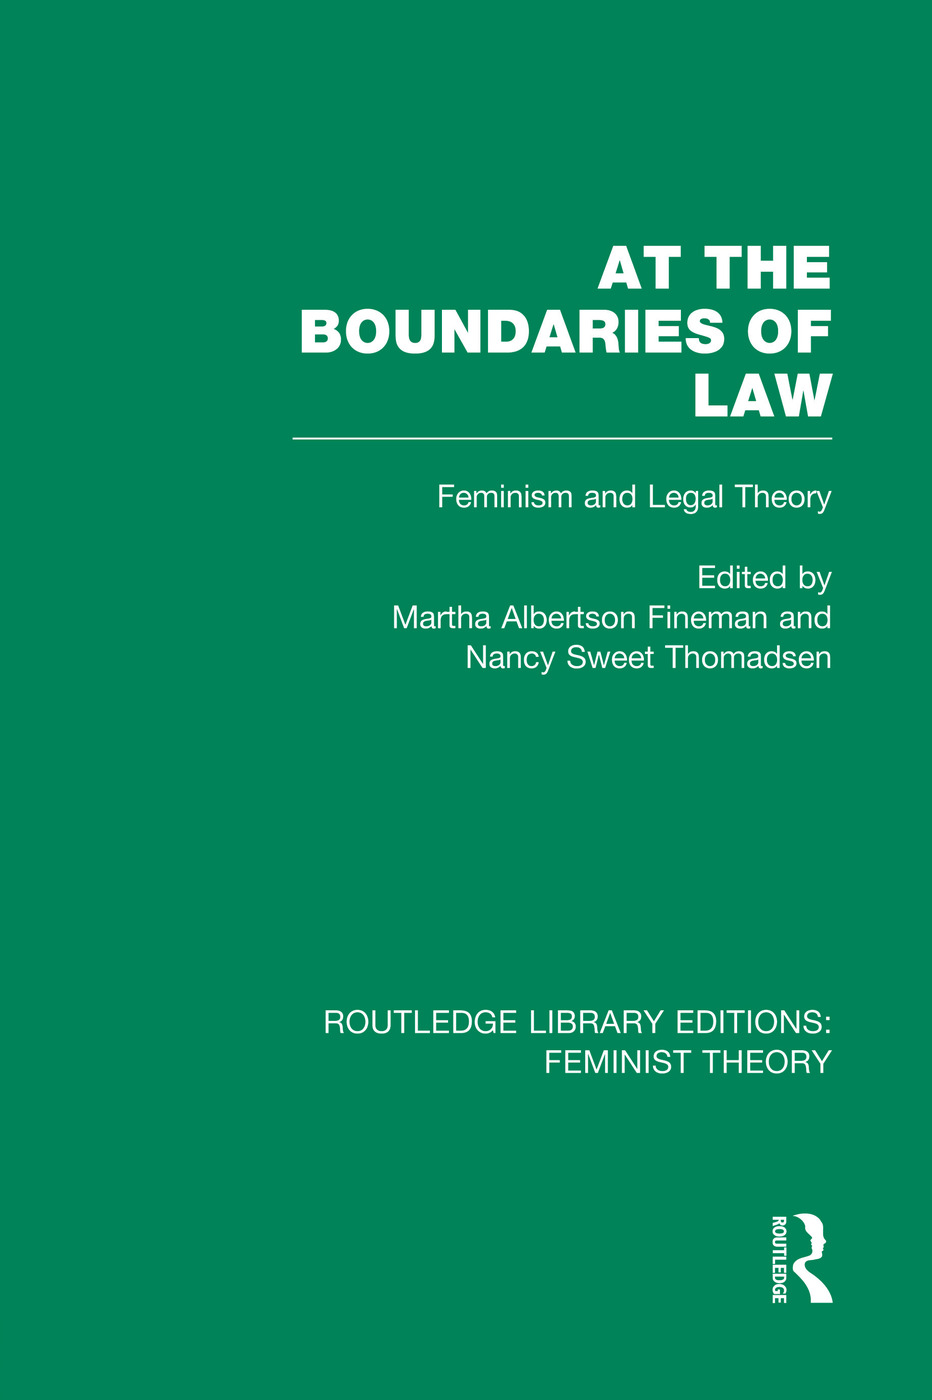 At the Boundaries of Law (RLE Feminist Theory): Feminism and Legal Theory book cover